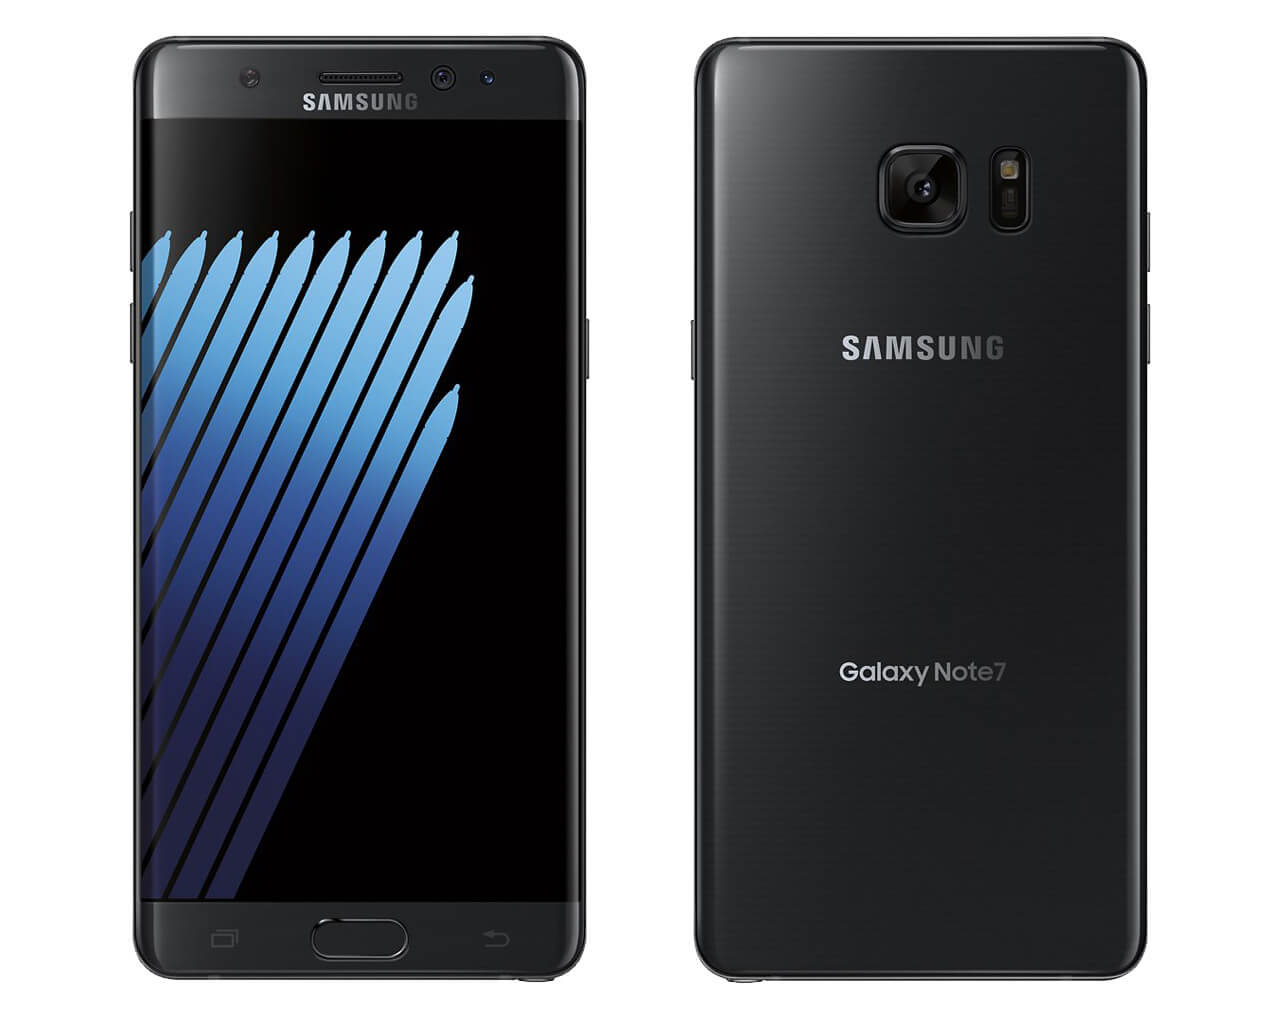 Samsung Galaxy Note 7 Black Onyxe Color Picture